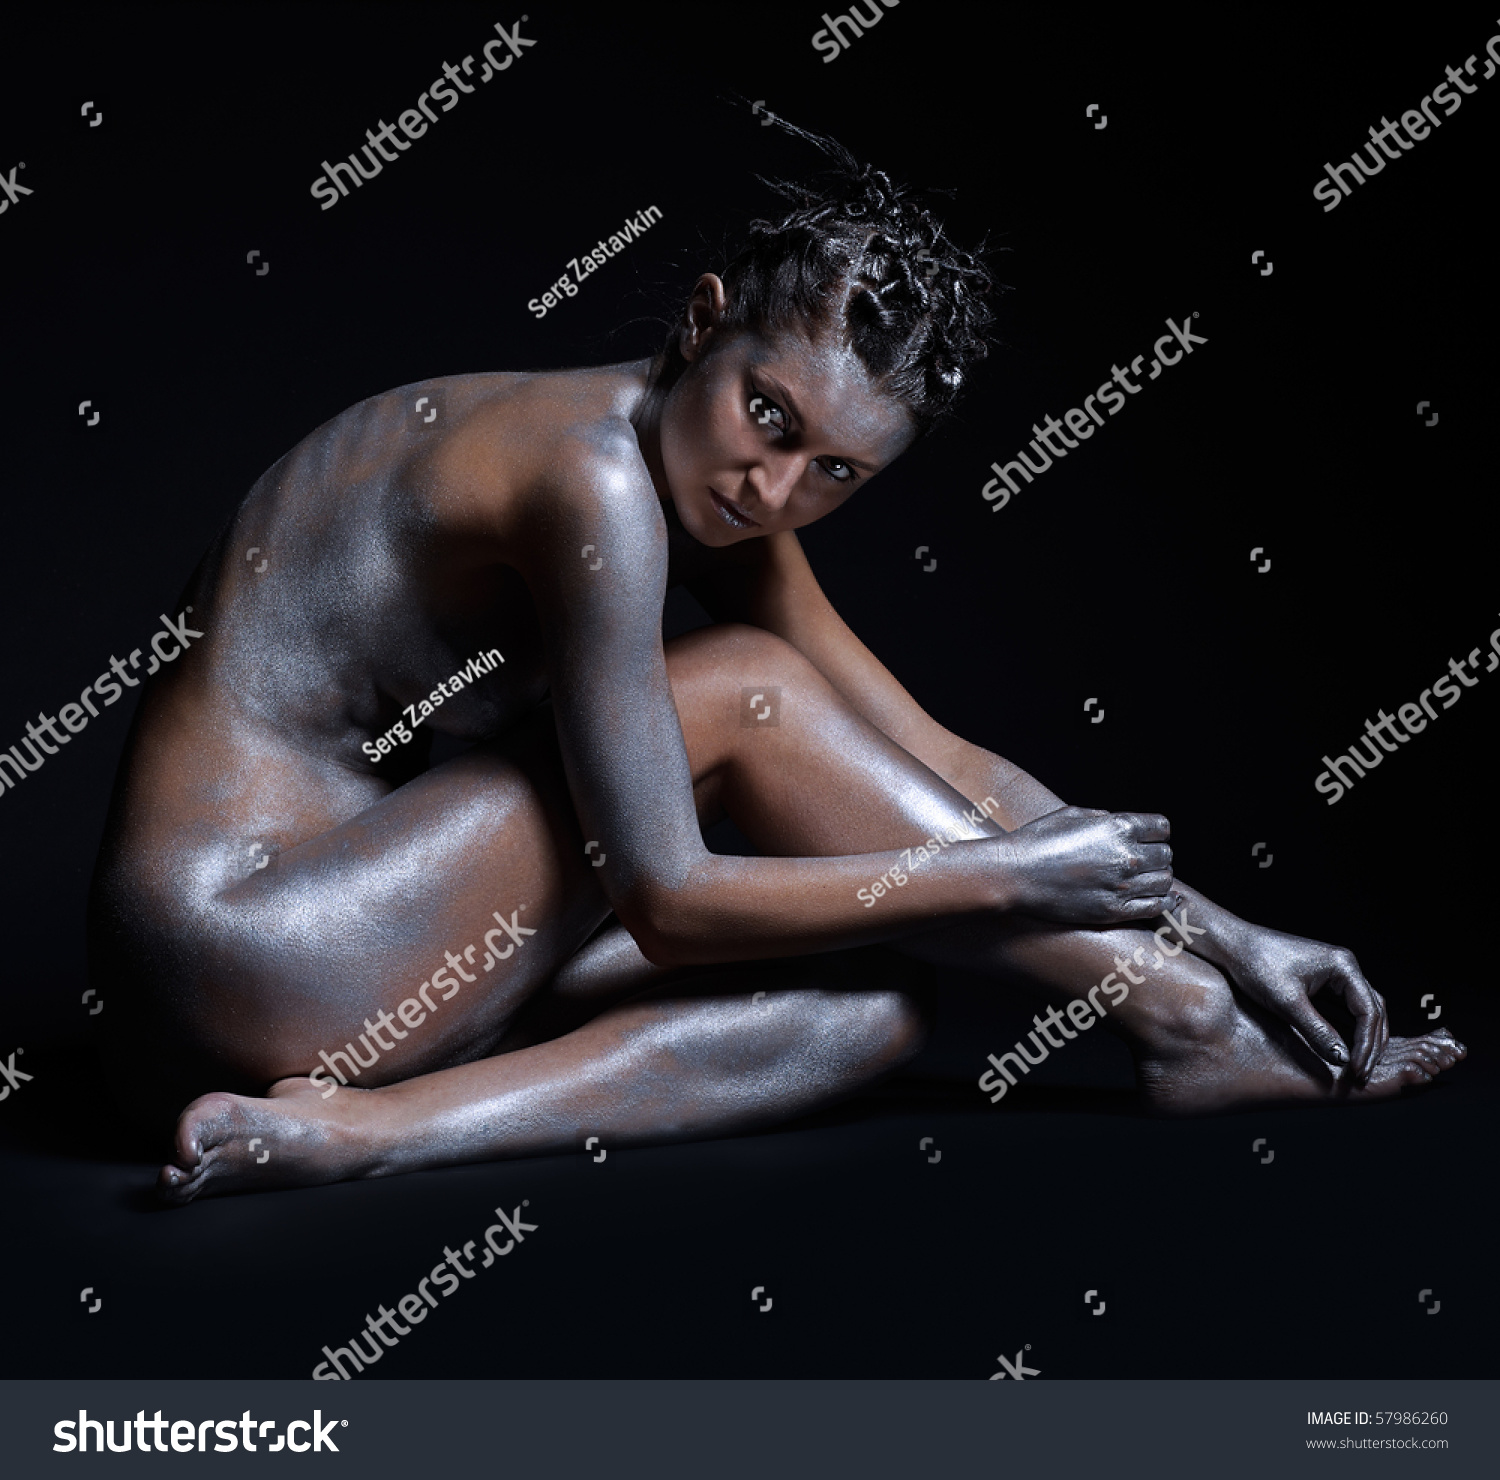 Similar it. Photos silver nude females opinion you